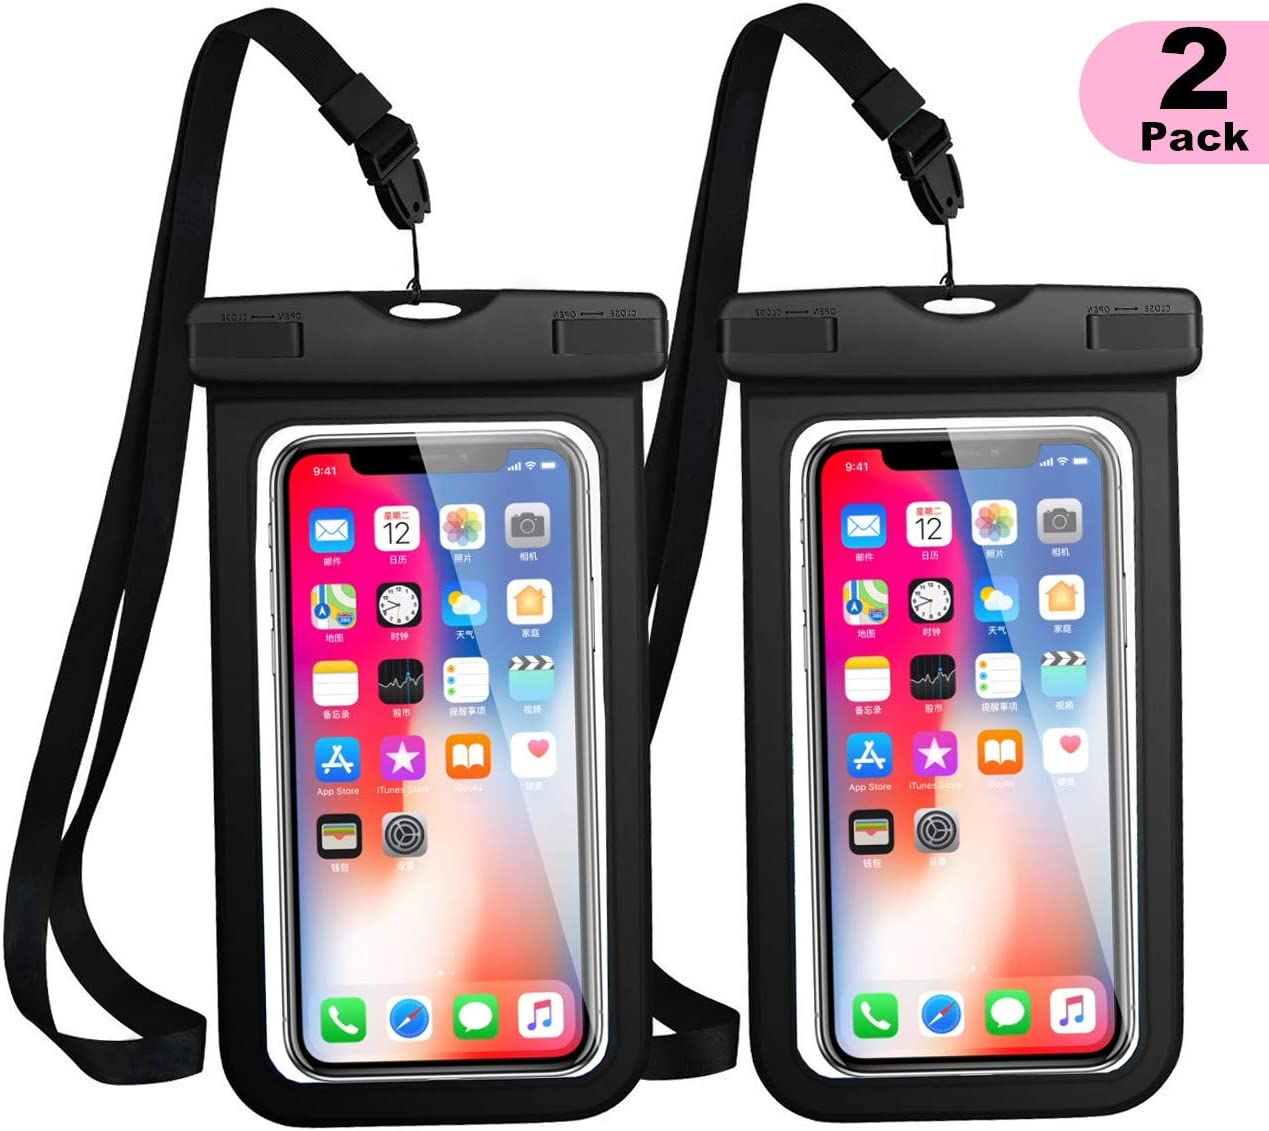 """WJZXTEK Universal Waterproof Case, Waterproof Phone Pouch for iPhone 11 Pro Max XS Max XR X 8 7 6S Plus Samsung Galaxy s10/s9 Google Pixel 2 HTC Up to 7.0"""",IPX8 Cellphone Dry Bag -2 Pack"""